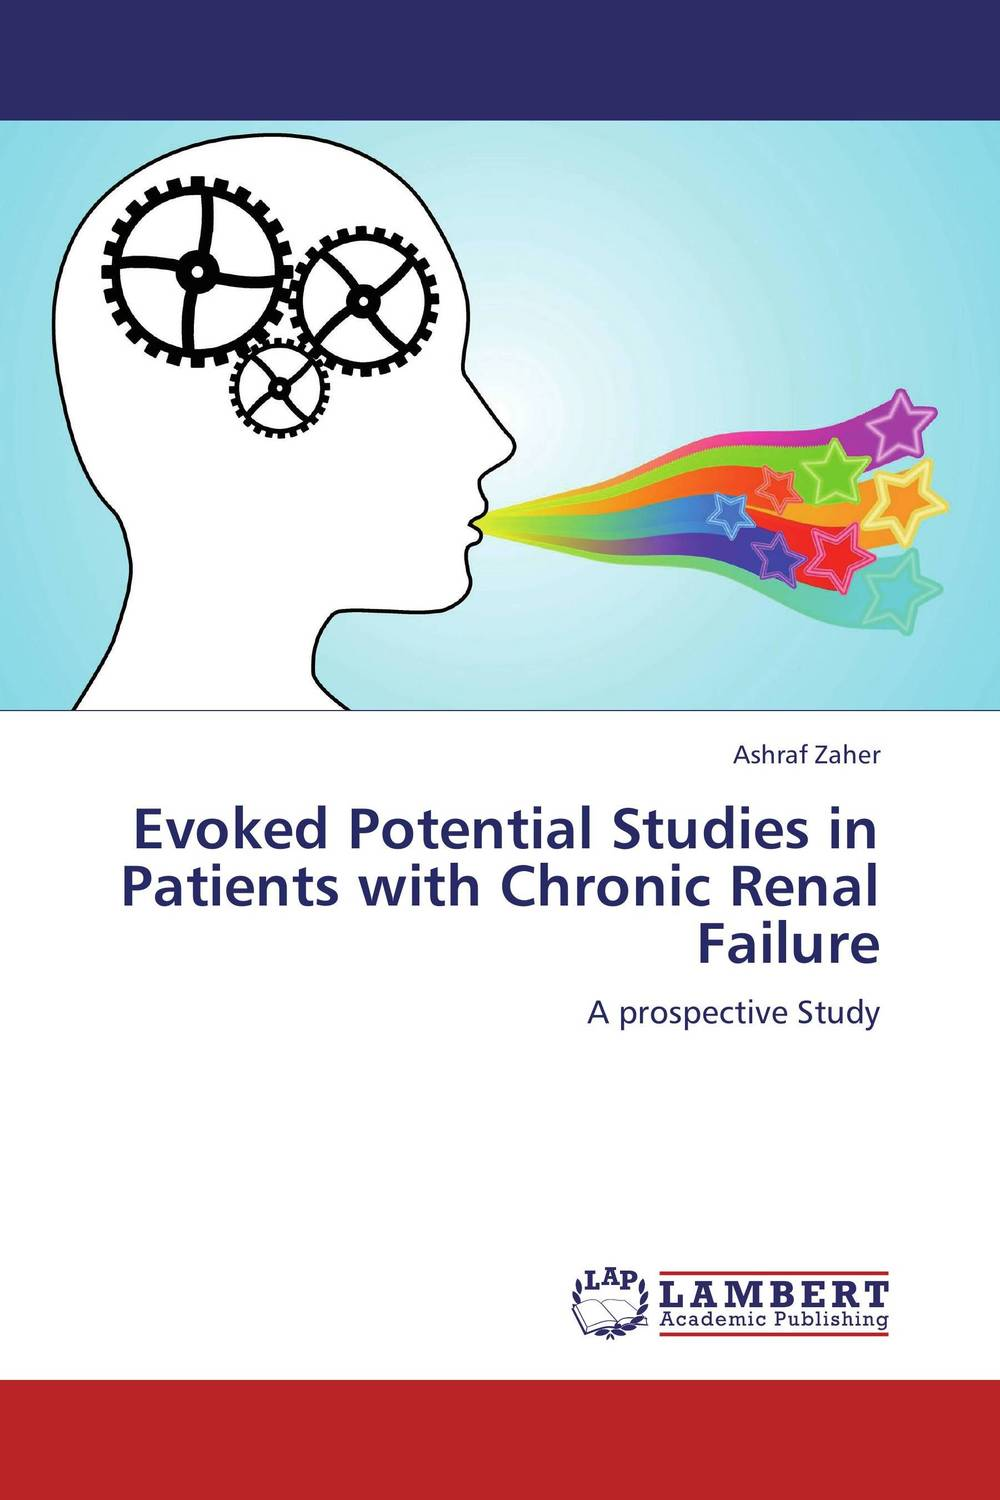 Evoked Potential Studies in Patients with Chronic Renal Failure lysaght contributions to nephrology – disputed issues in renal failure therapy